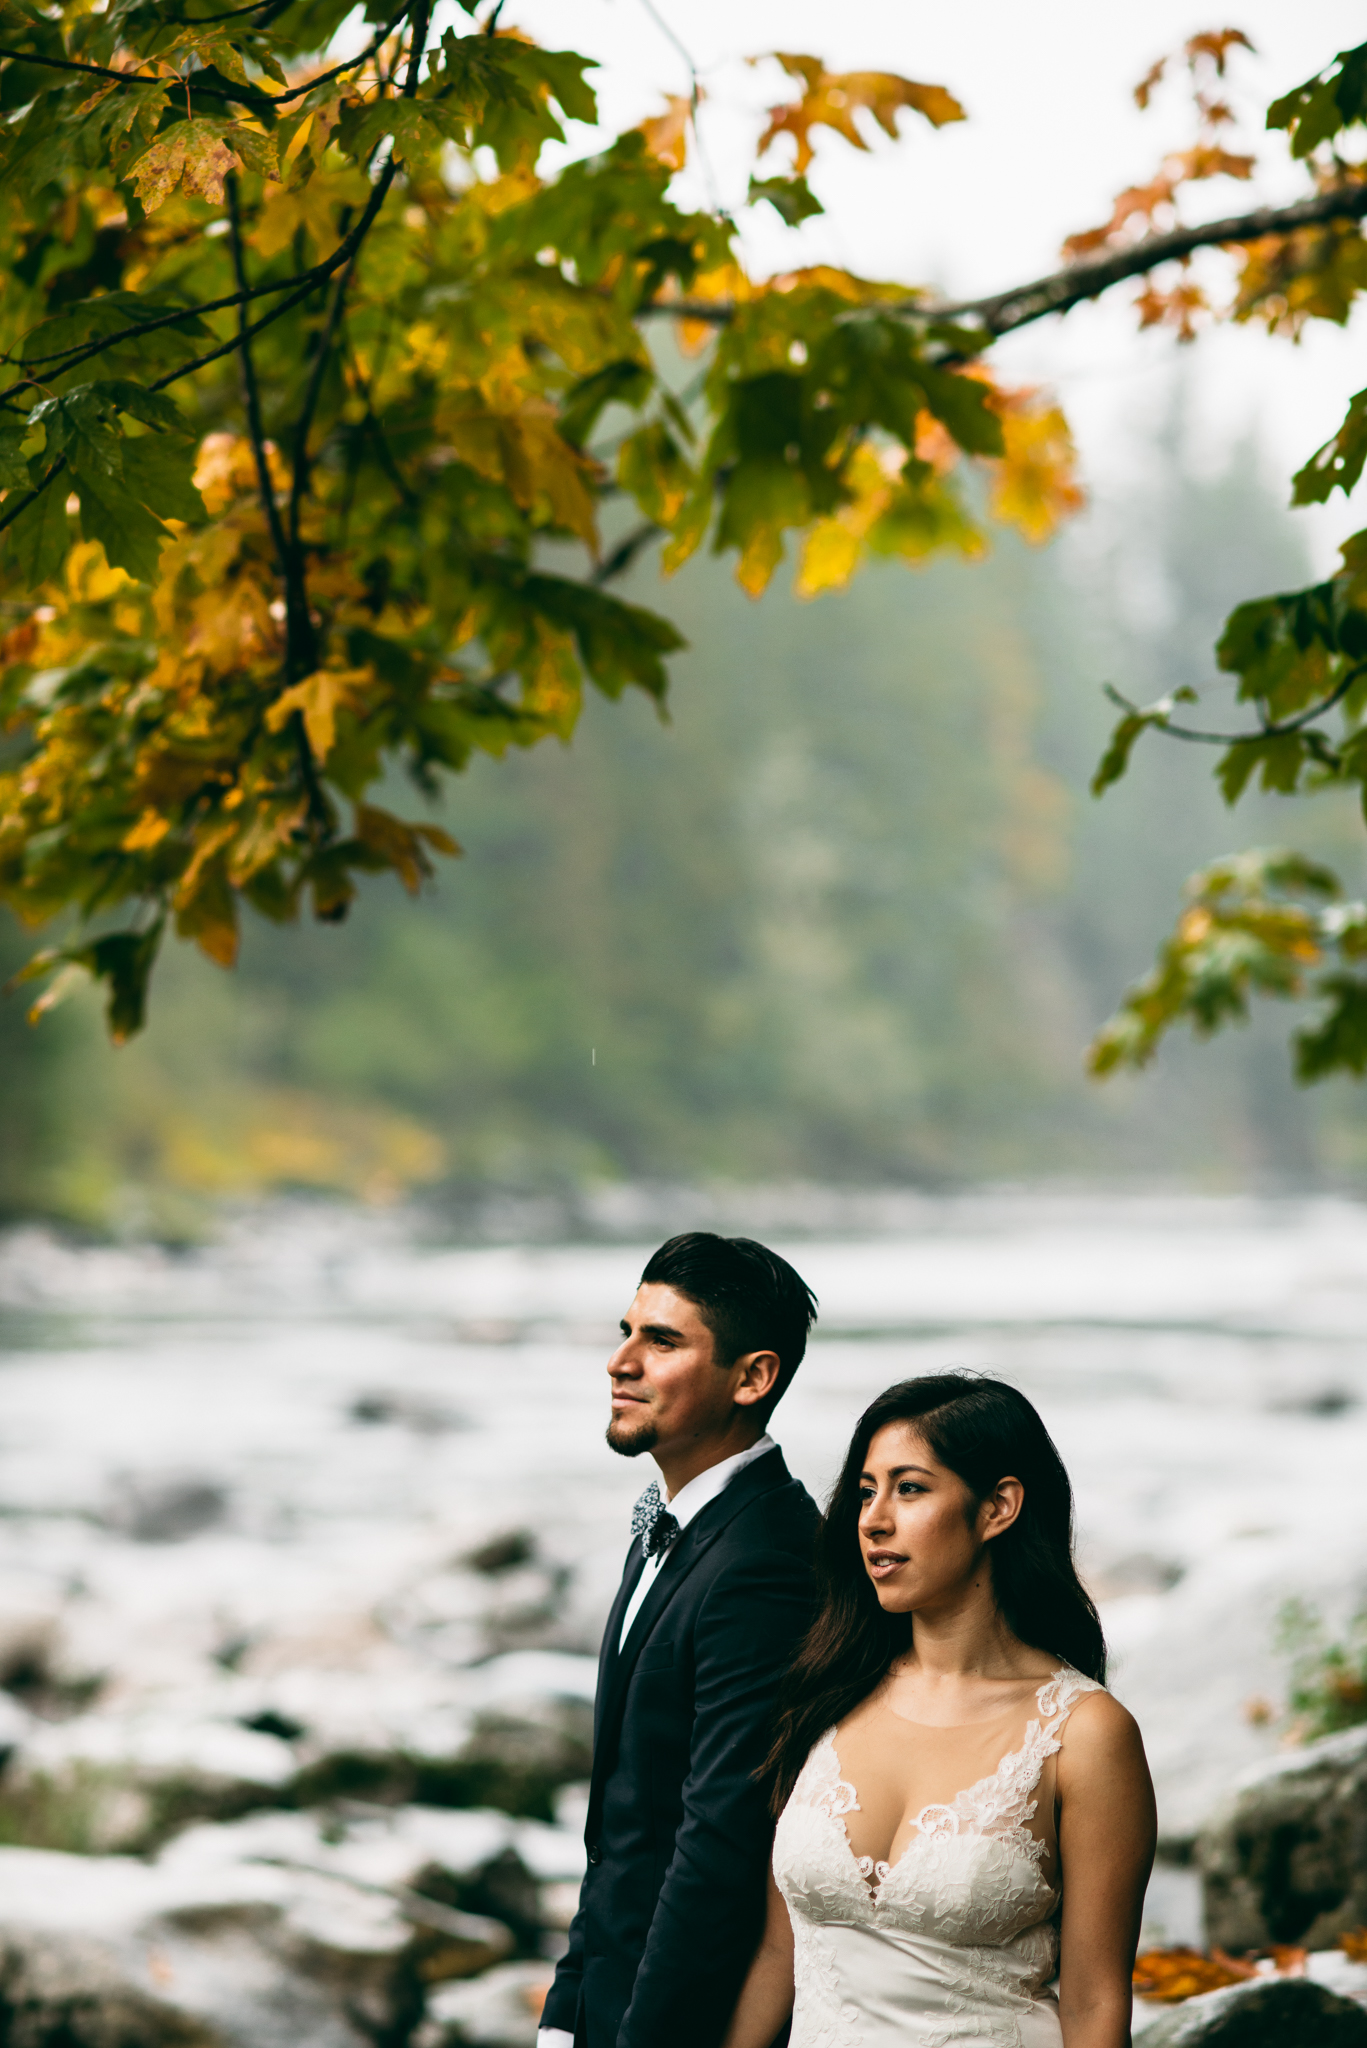 ©Isaiah & Taylor Photography - Los Angeles Wedding - Snoqualmie, Washington Honeymoon-017.jpg